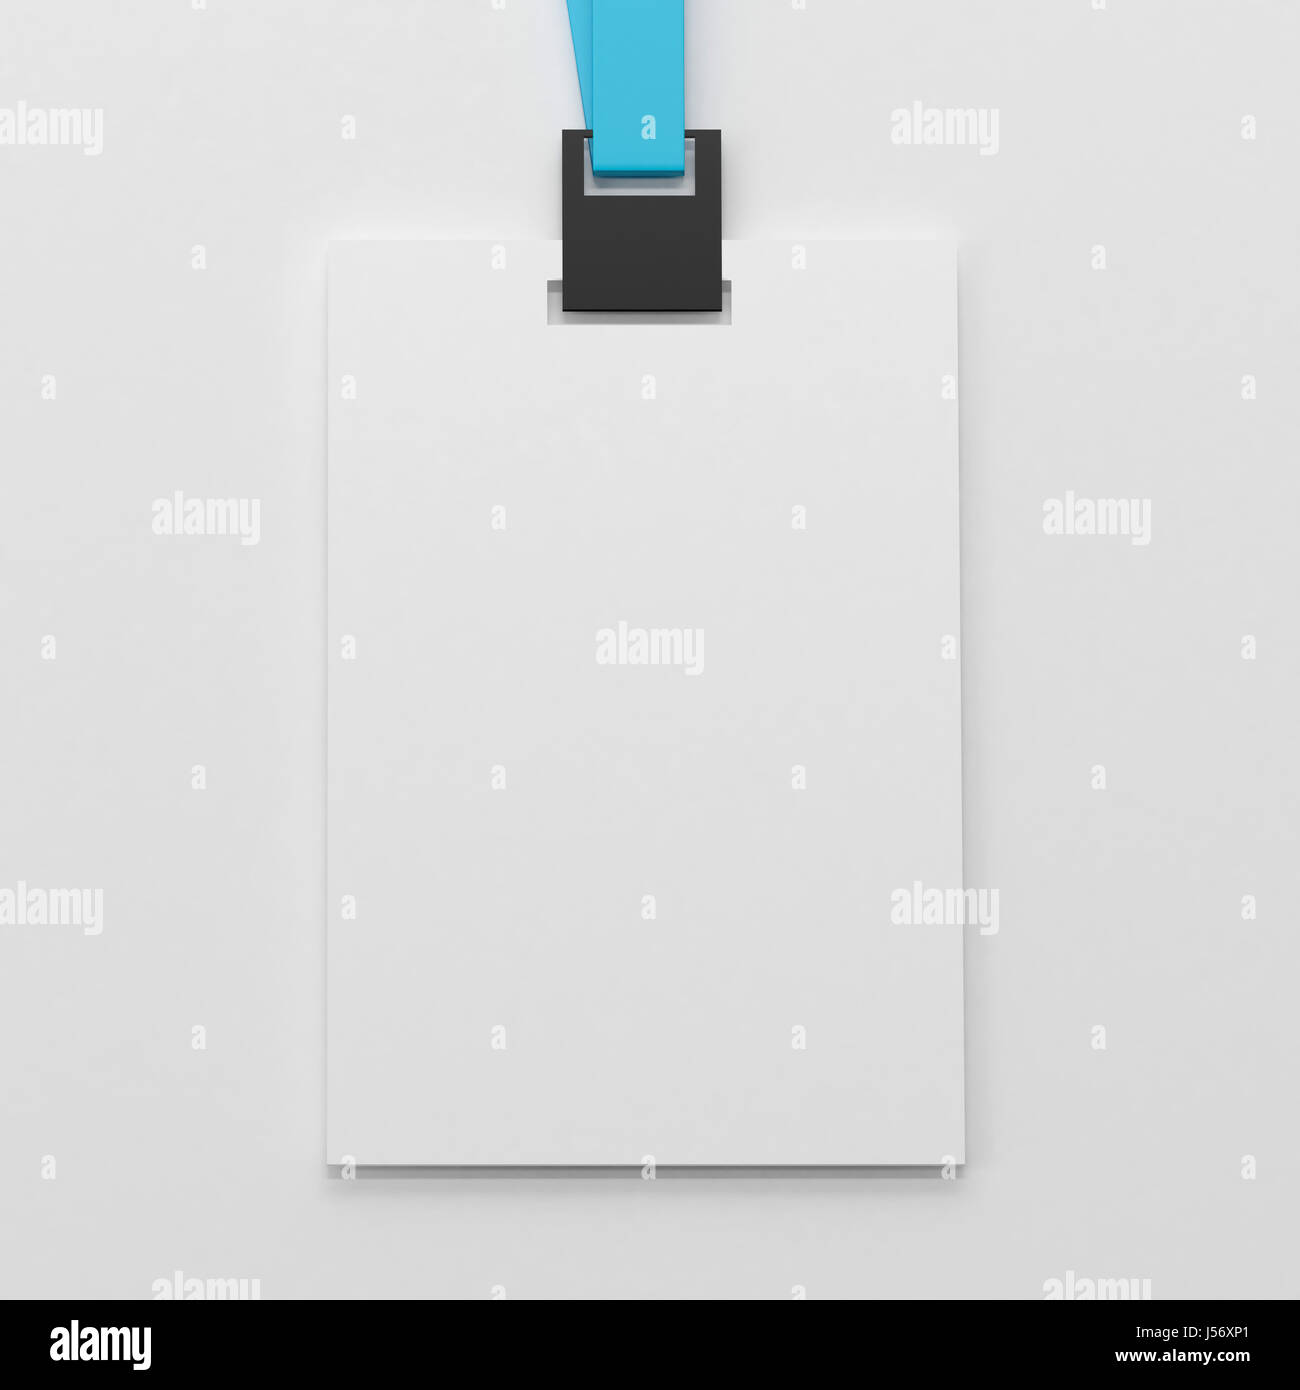 Realistic Blank Identity Card ,Vertical Badge & Bio-metric Card With Blue Ribbon - Stock Image